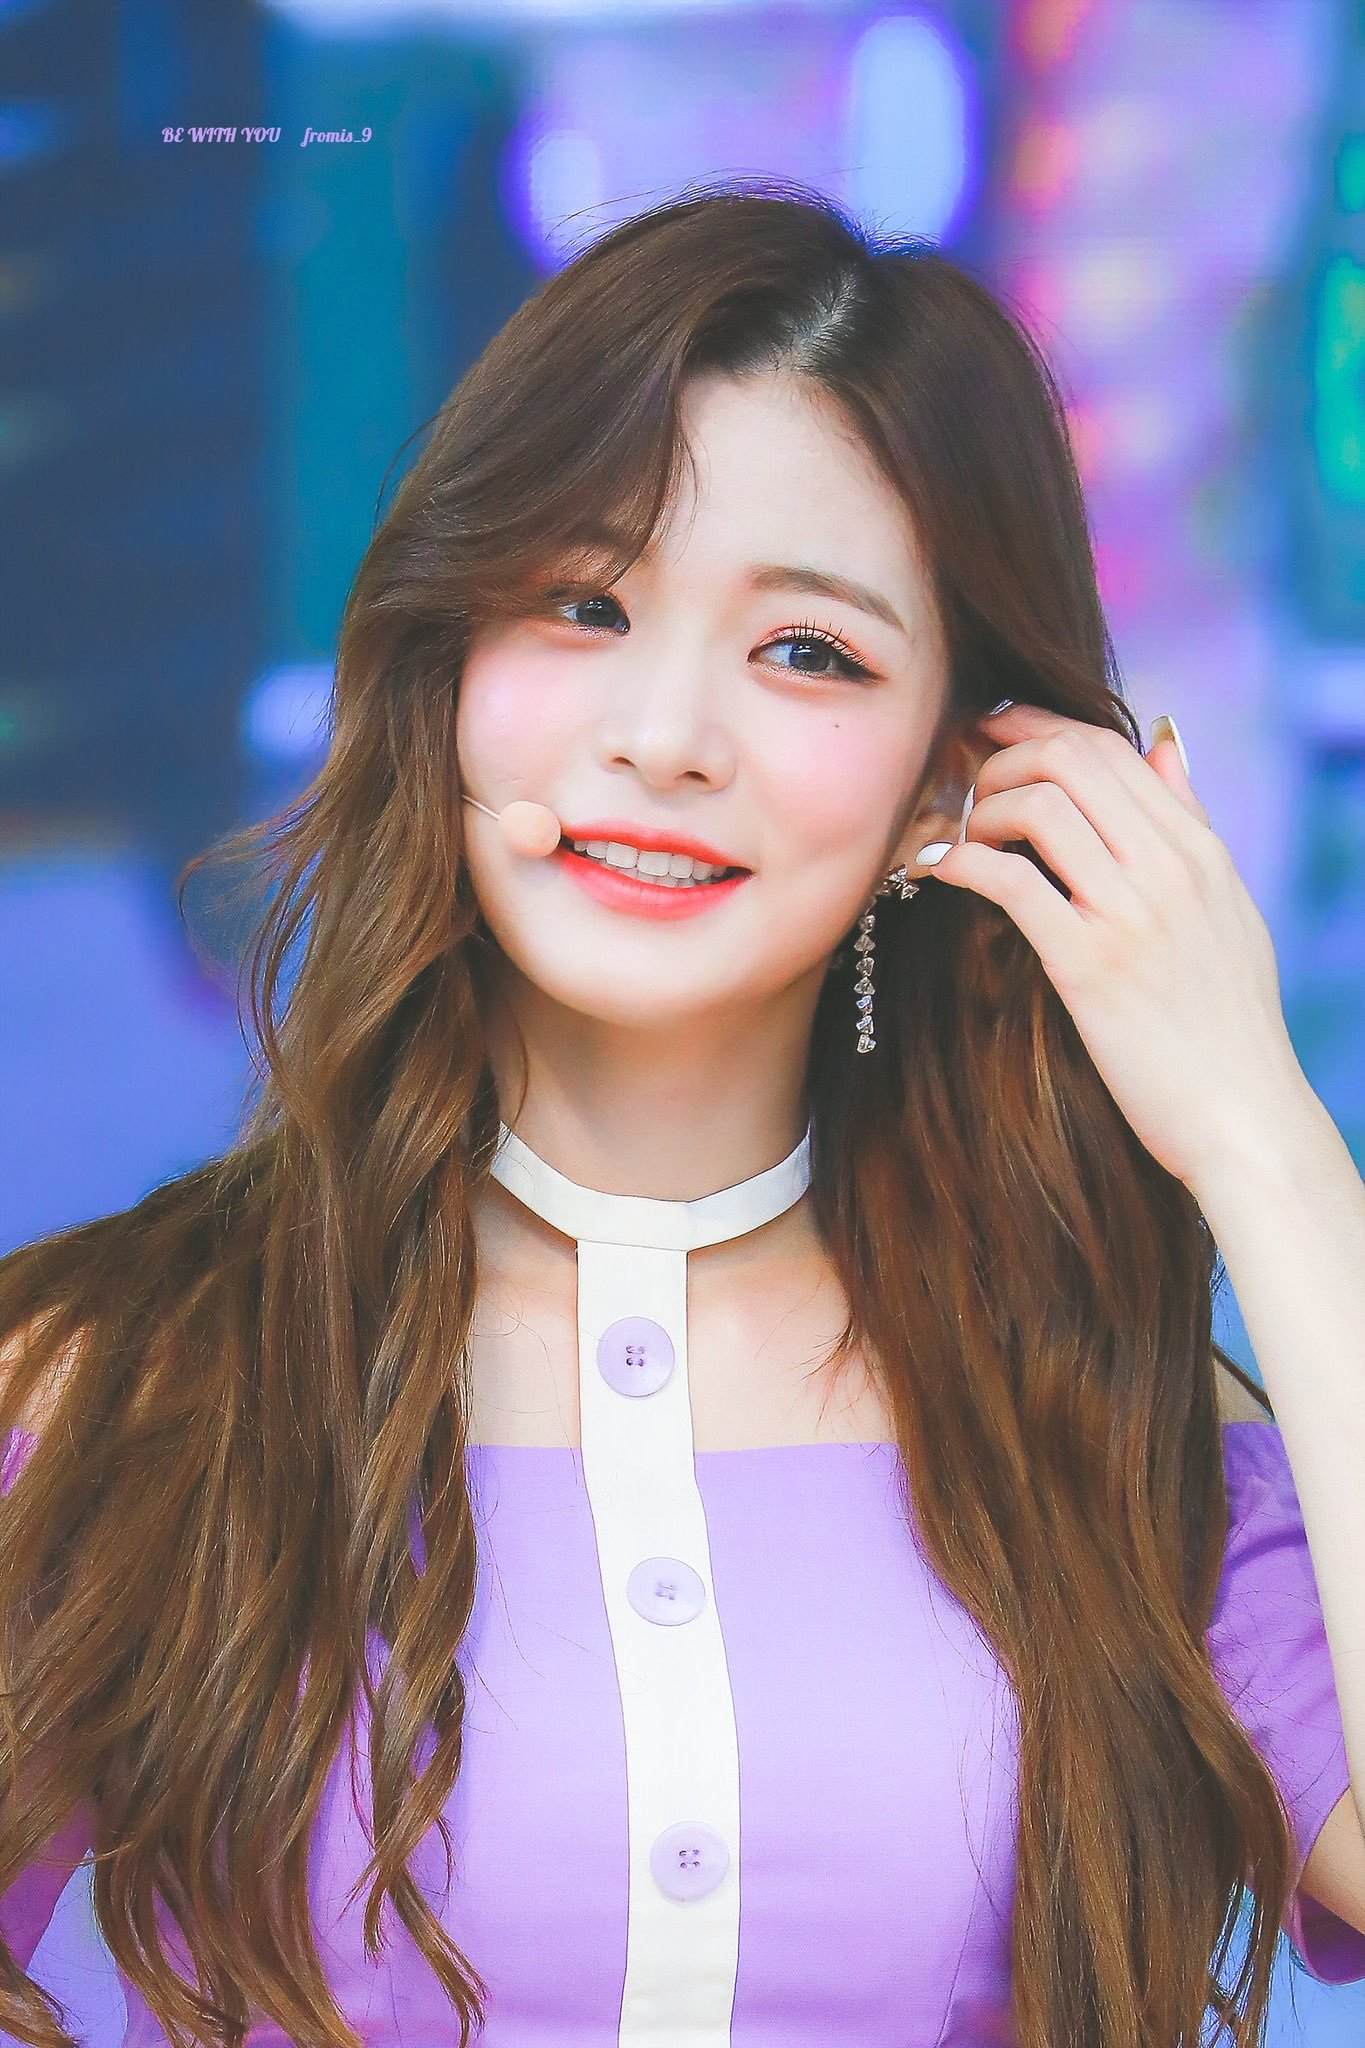 fromis 9, fromis 9 profile, fromis 9 facts, fromis 9 age, fromis 9 height, fromis 9 leader, fromis 9 age, fromis 9 chaeyoung, chaeyoung